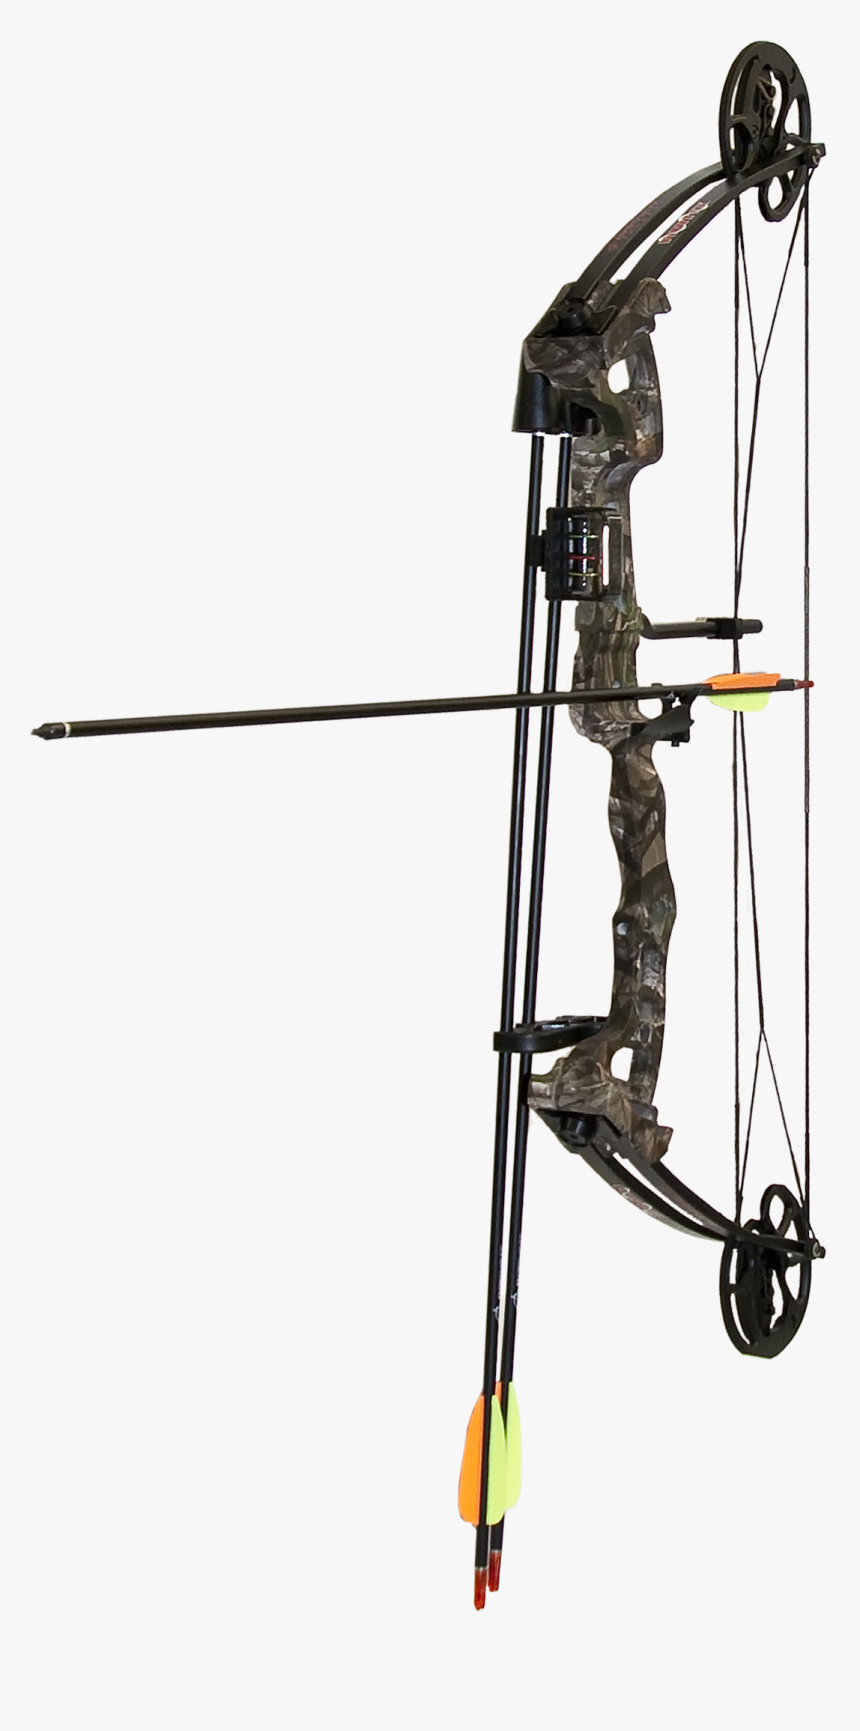 Barnett Vortex Compound Bow 19 45, HD Png Download, Free Download